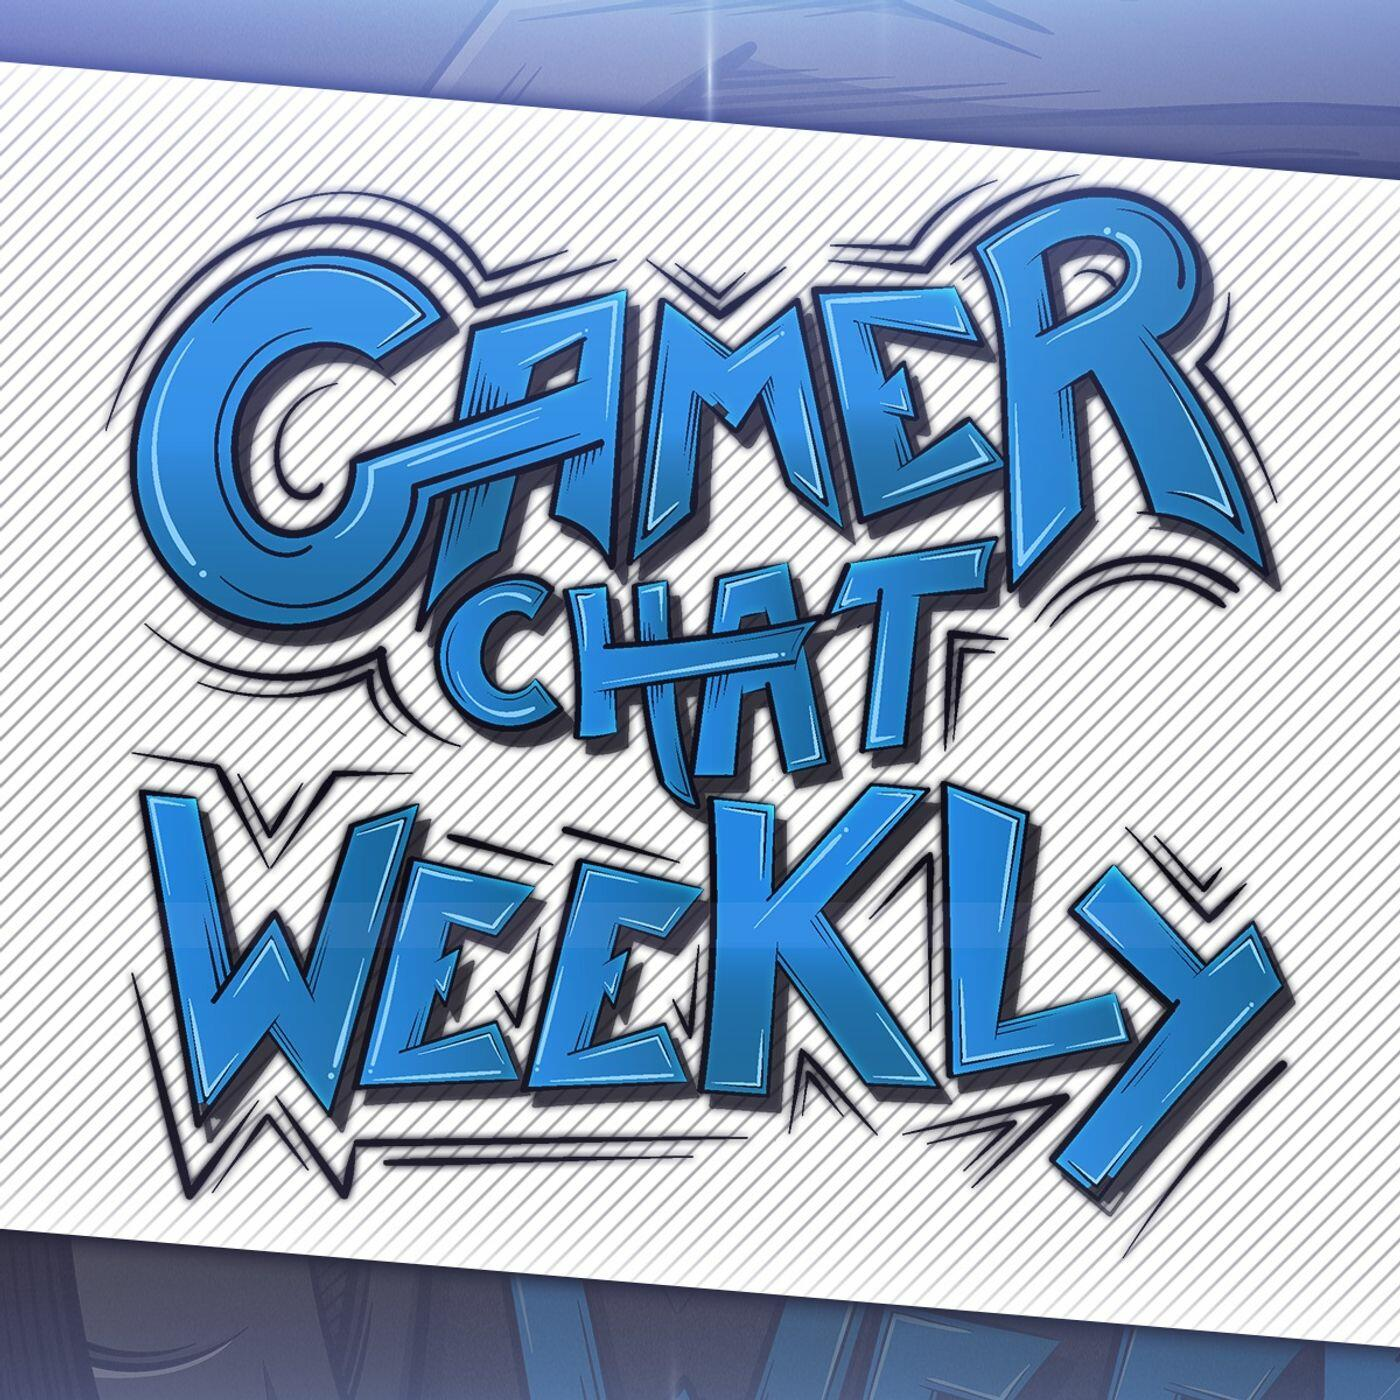 Listen to Gamer Chat Weekly Ep. 109 (Angie RAGE) | The Gamer Chat Weekly Show | Podcasts